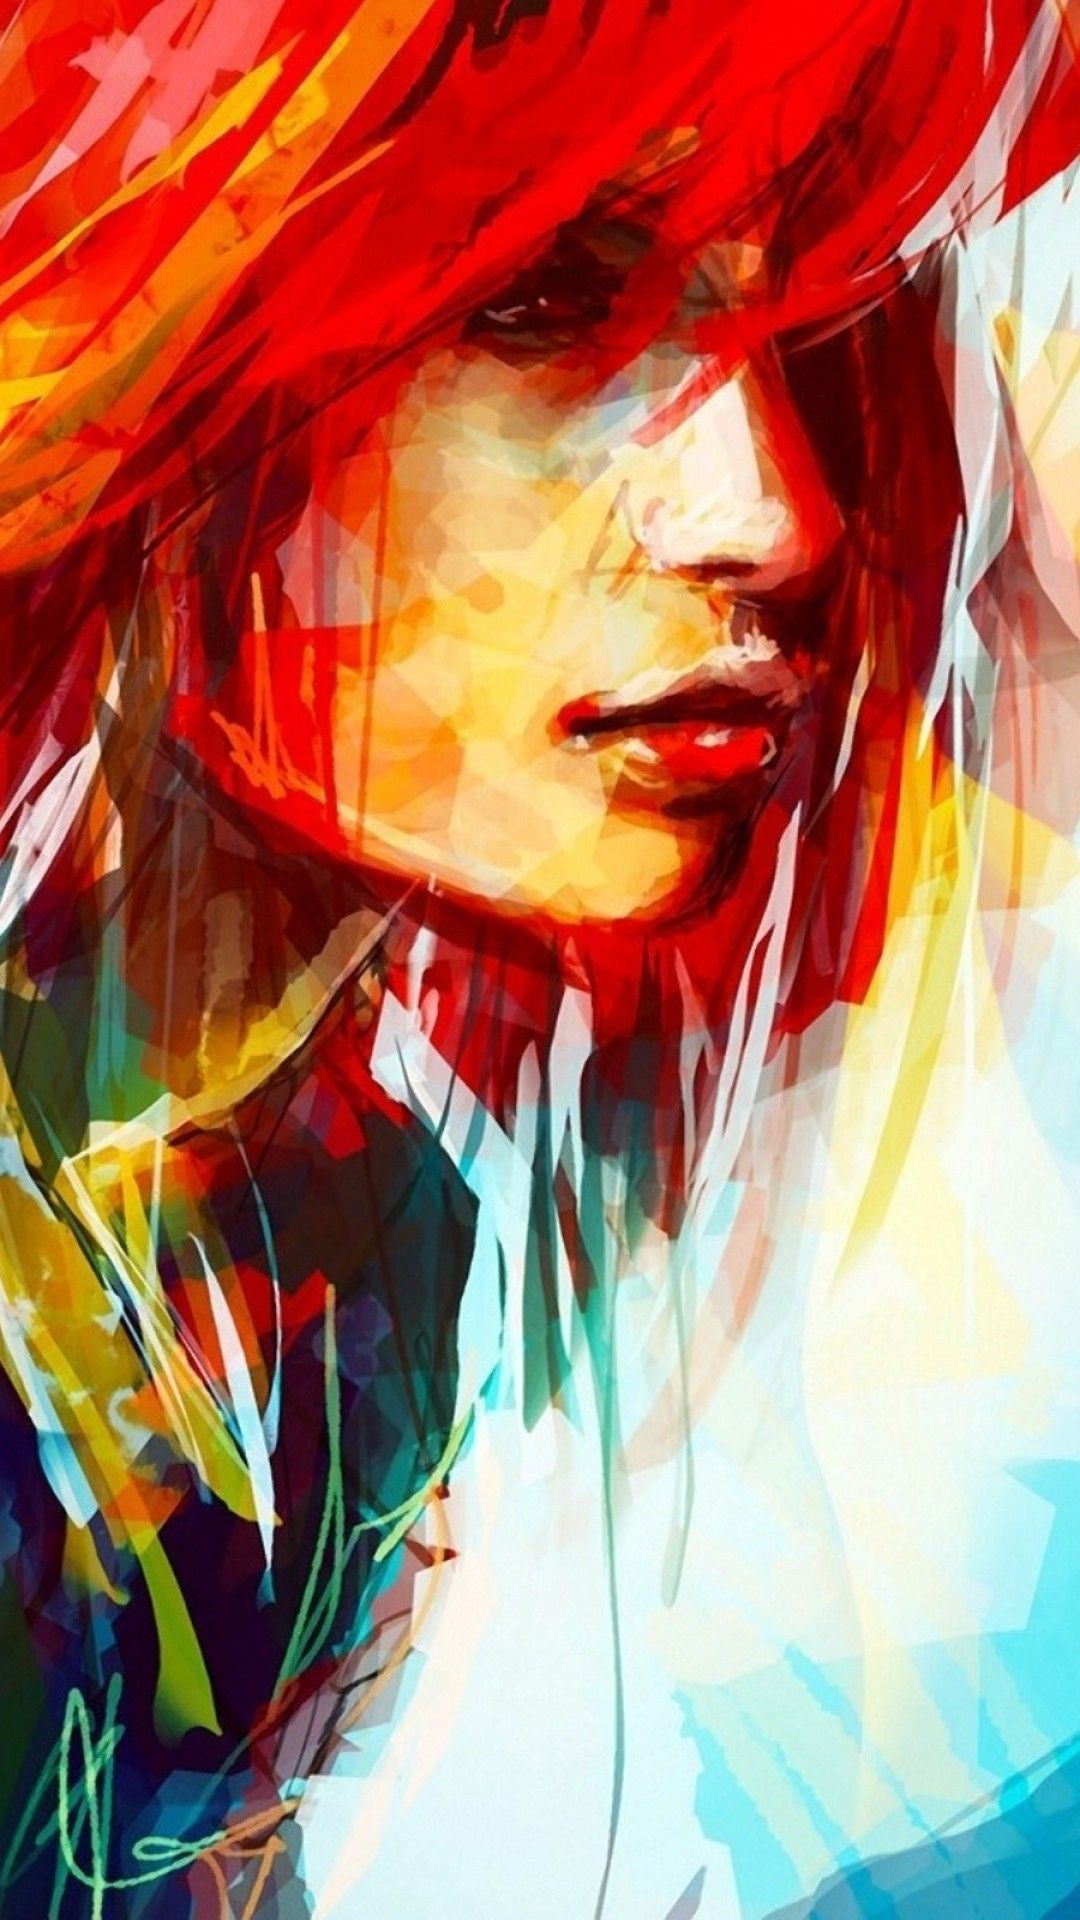 1080x1920 1080x1920 Hd Wallpaper Portrait Wallpapersafari Digital Art Illustration Illustration Example Painting